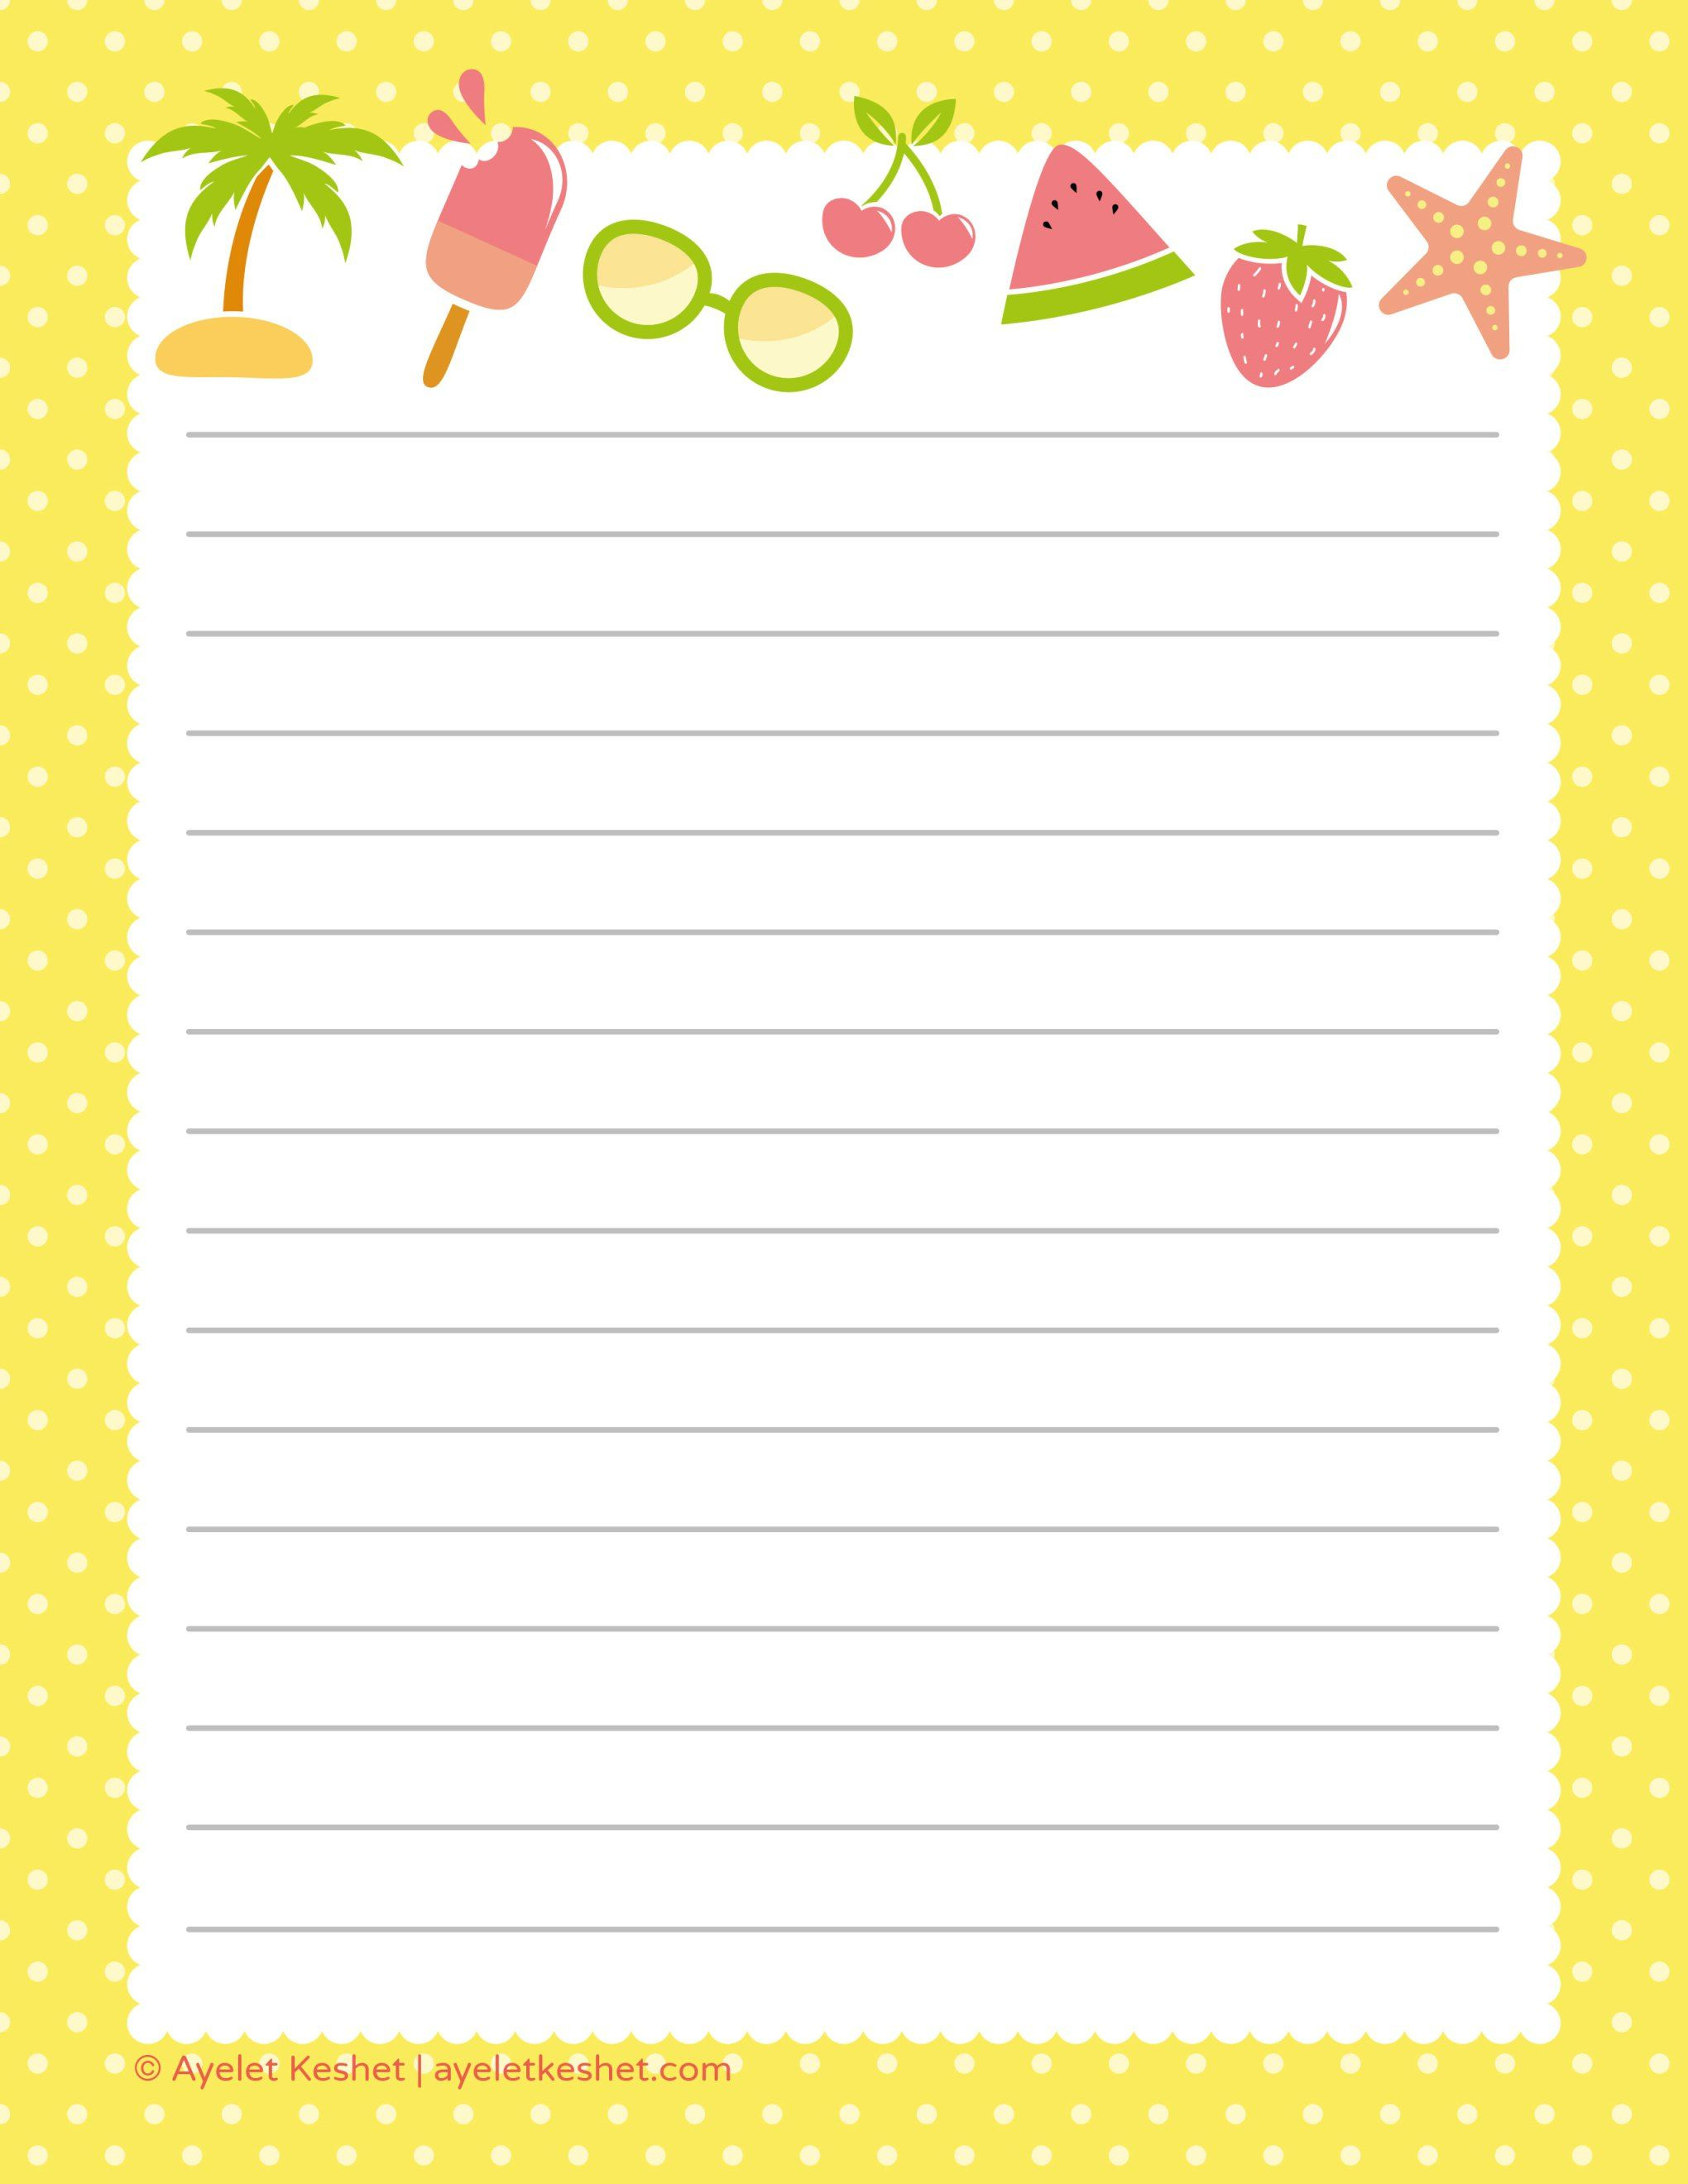 Free Printable Letter Paper | Printables To Go | Pinterest - Free Printable Stationary Pdf